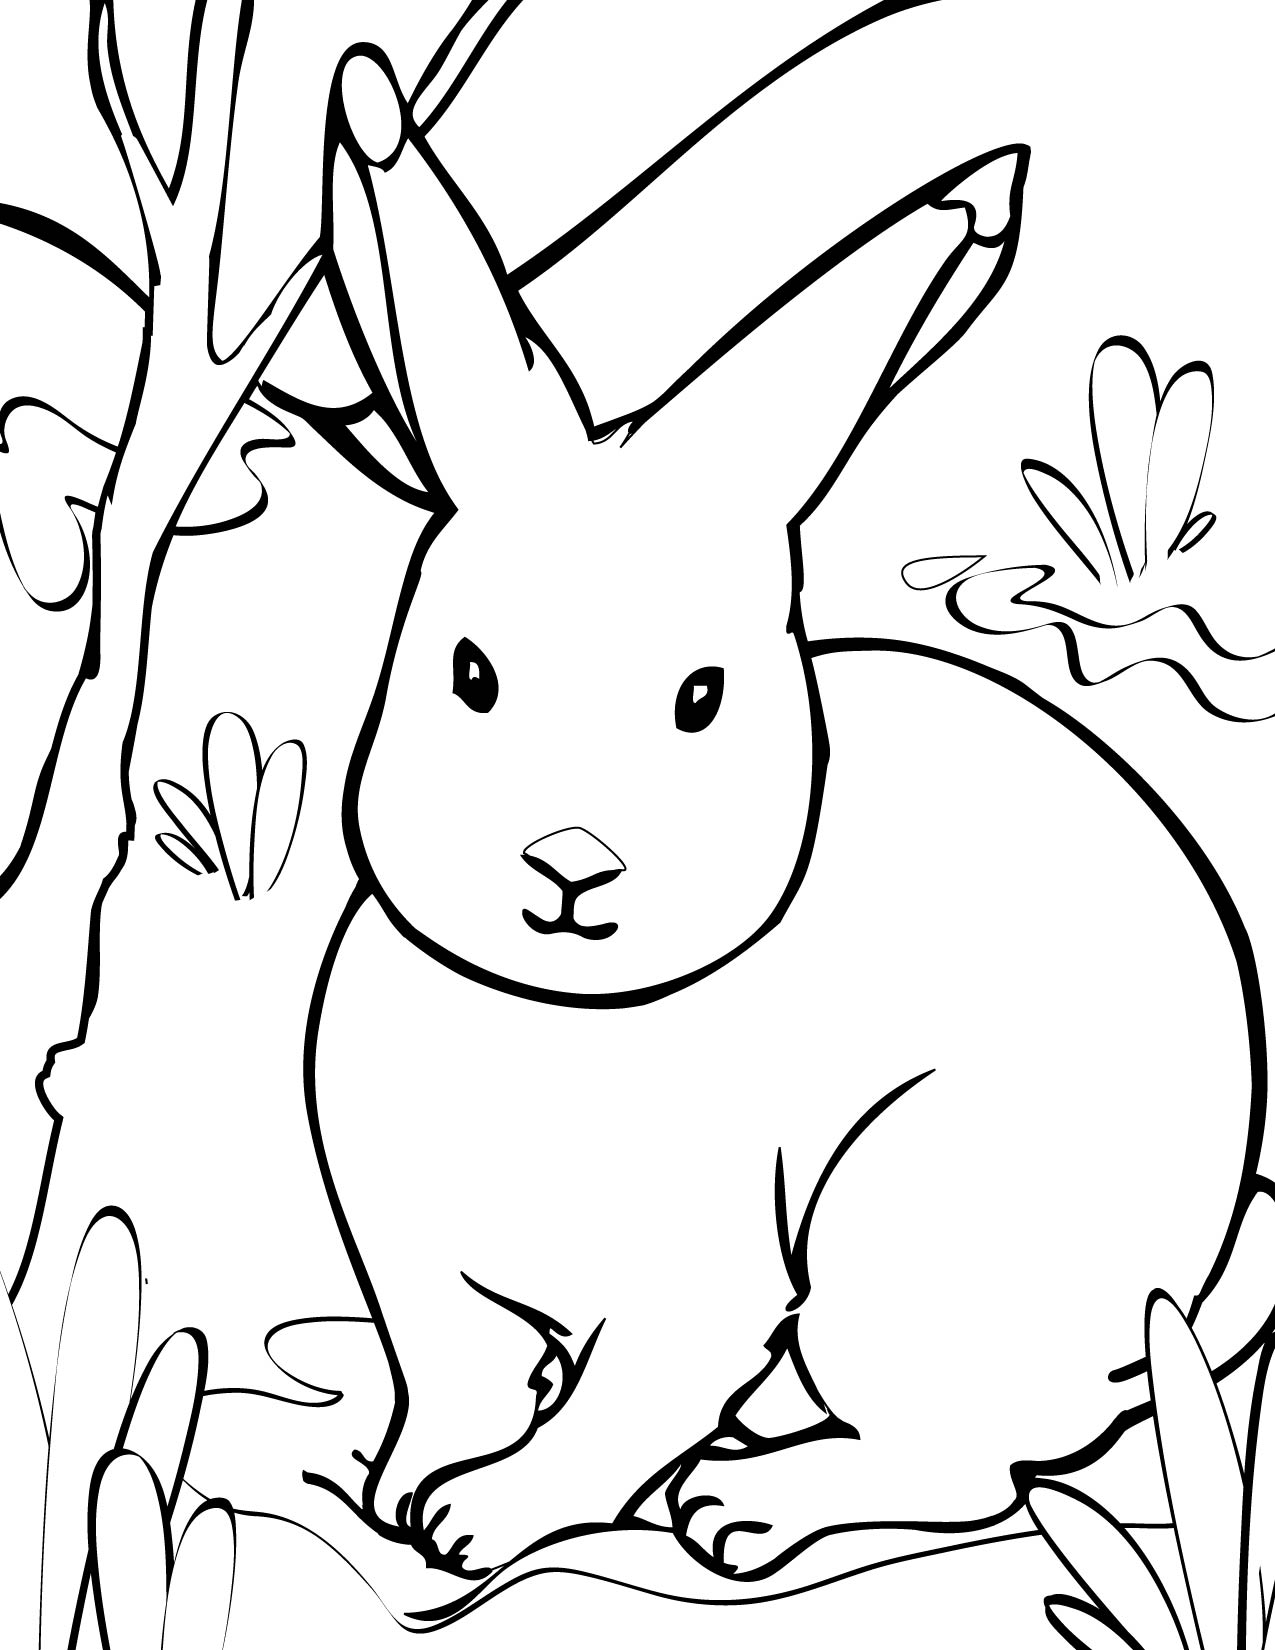 arctic animals coloring pages arctic animals song for children coloring animals pages arctic